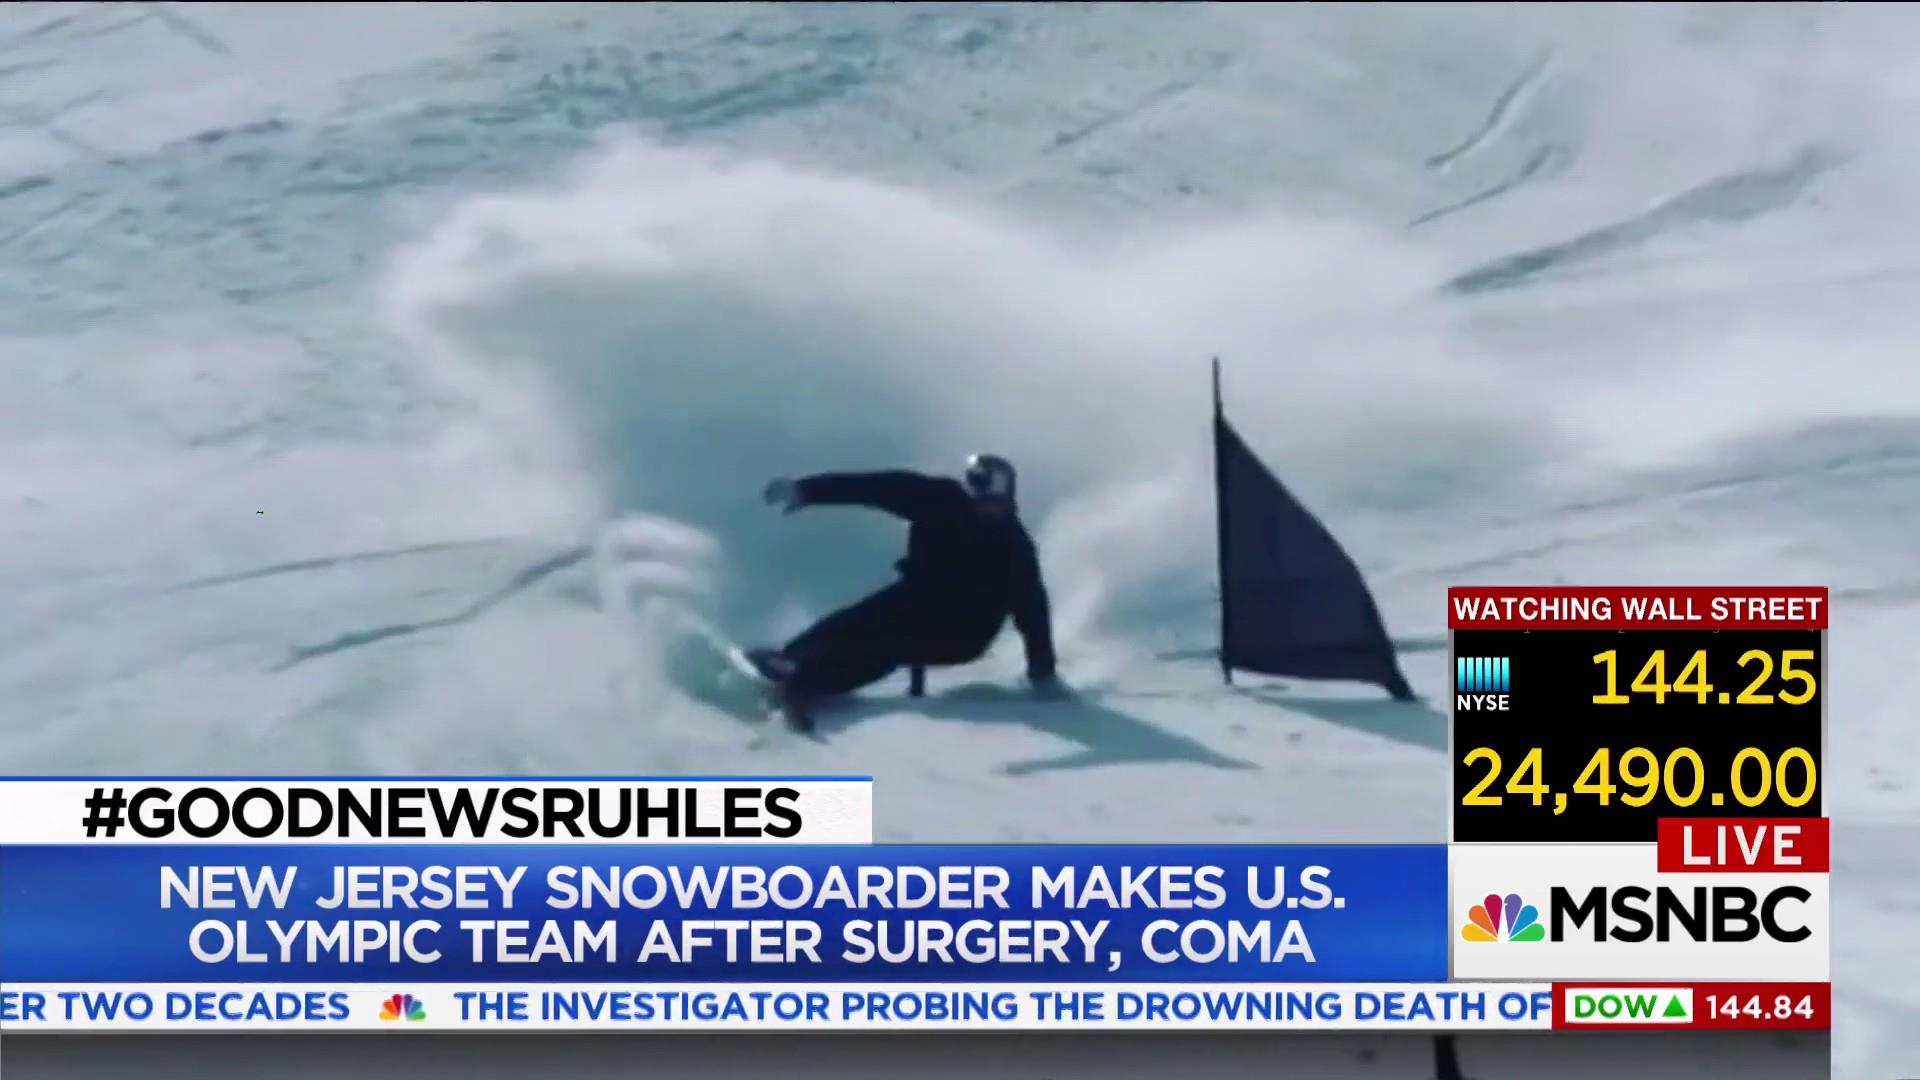 #GoodNewsRuhles: Snowboarder from coma to Olympics